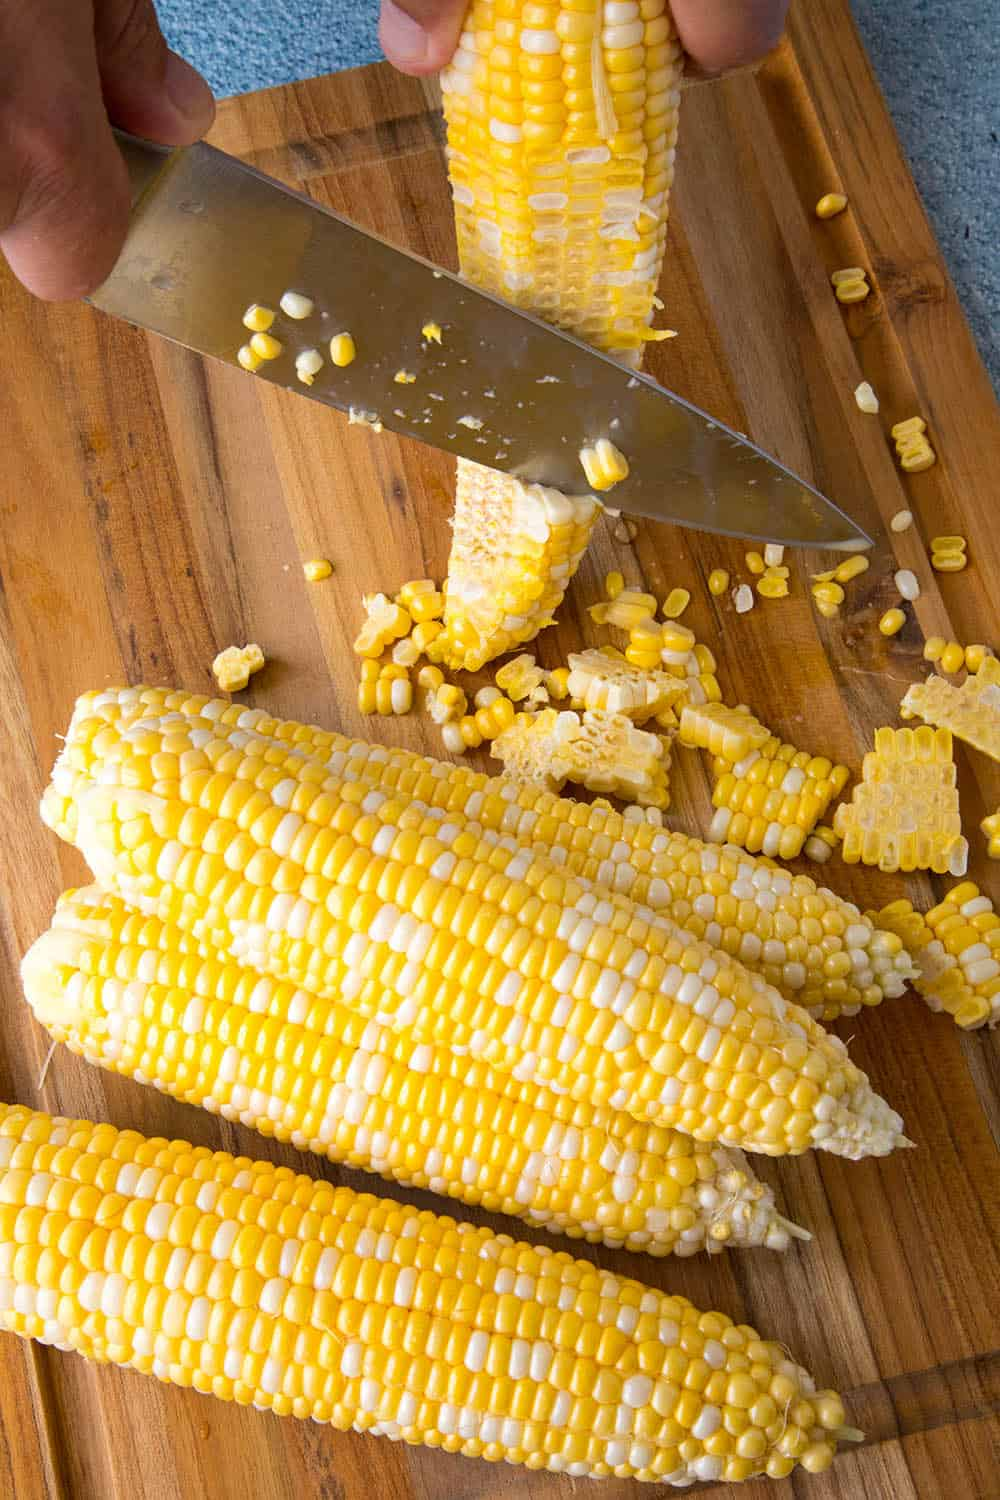 Cutting corn kernels from the corn cobs